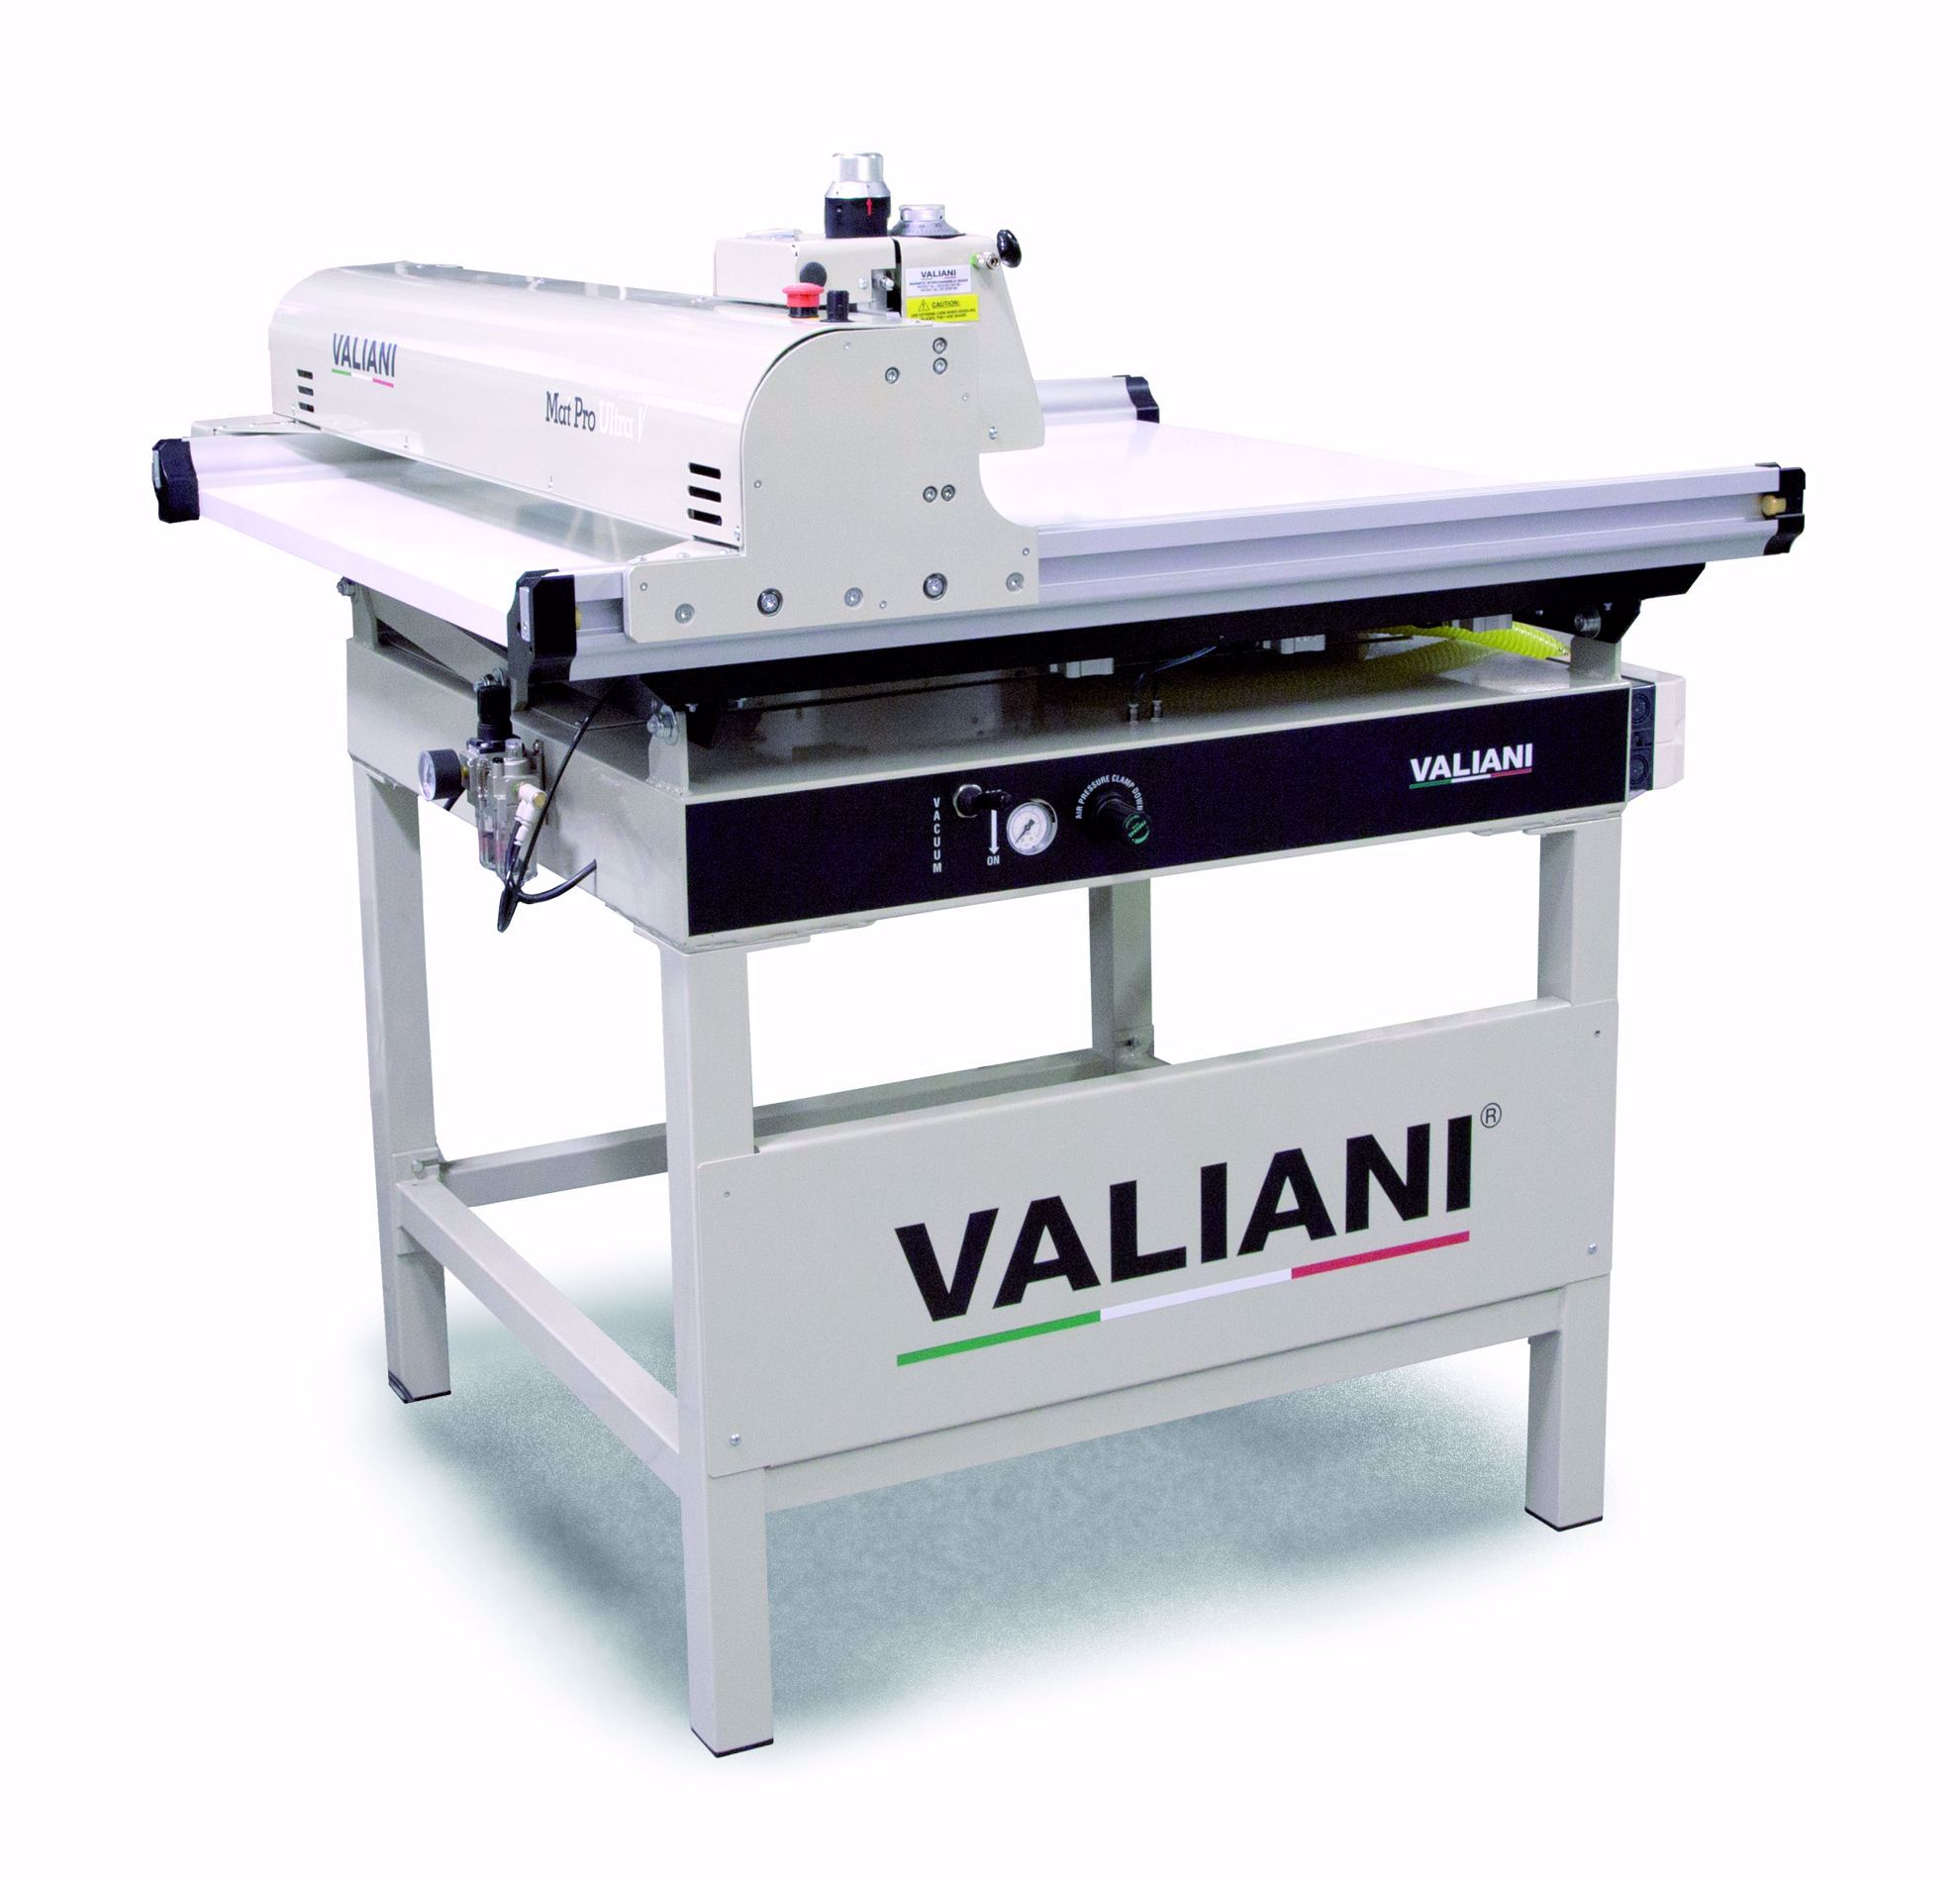 Picture of Valiani Mat Pro Ultra V80 flat bed cutting table